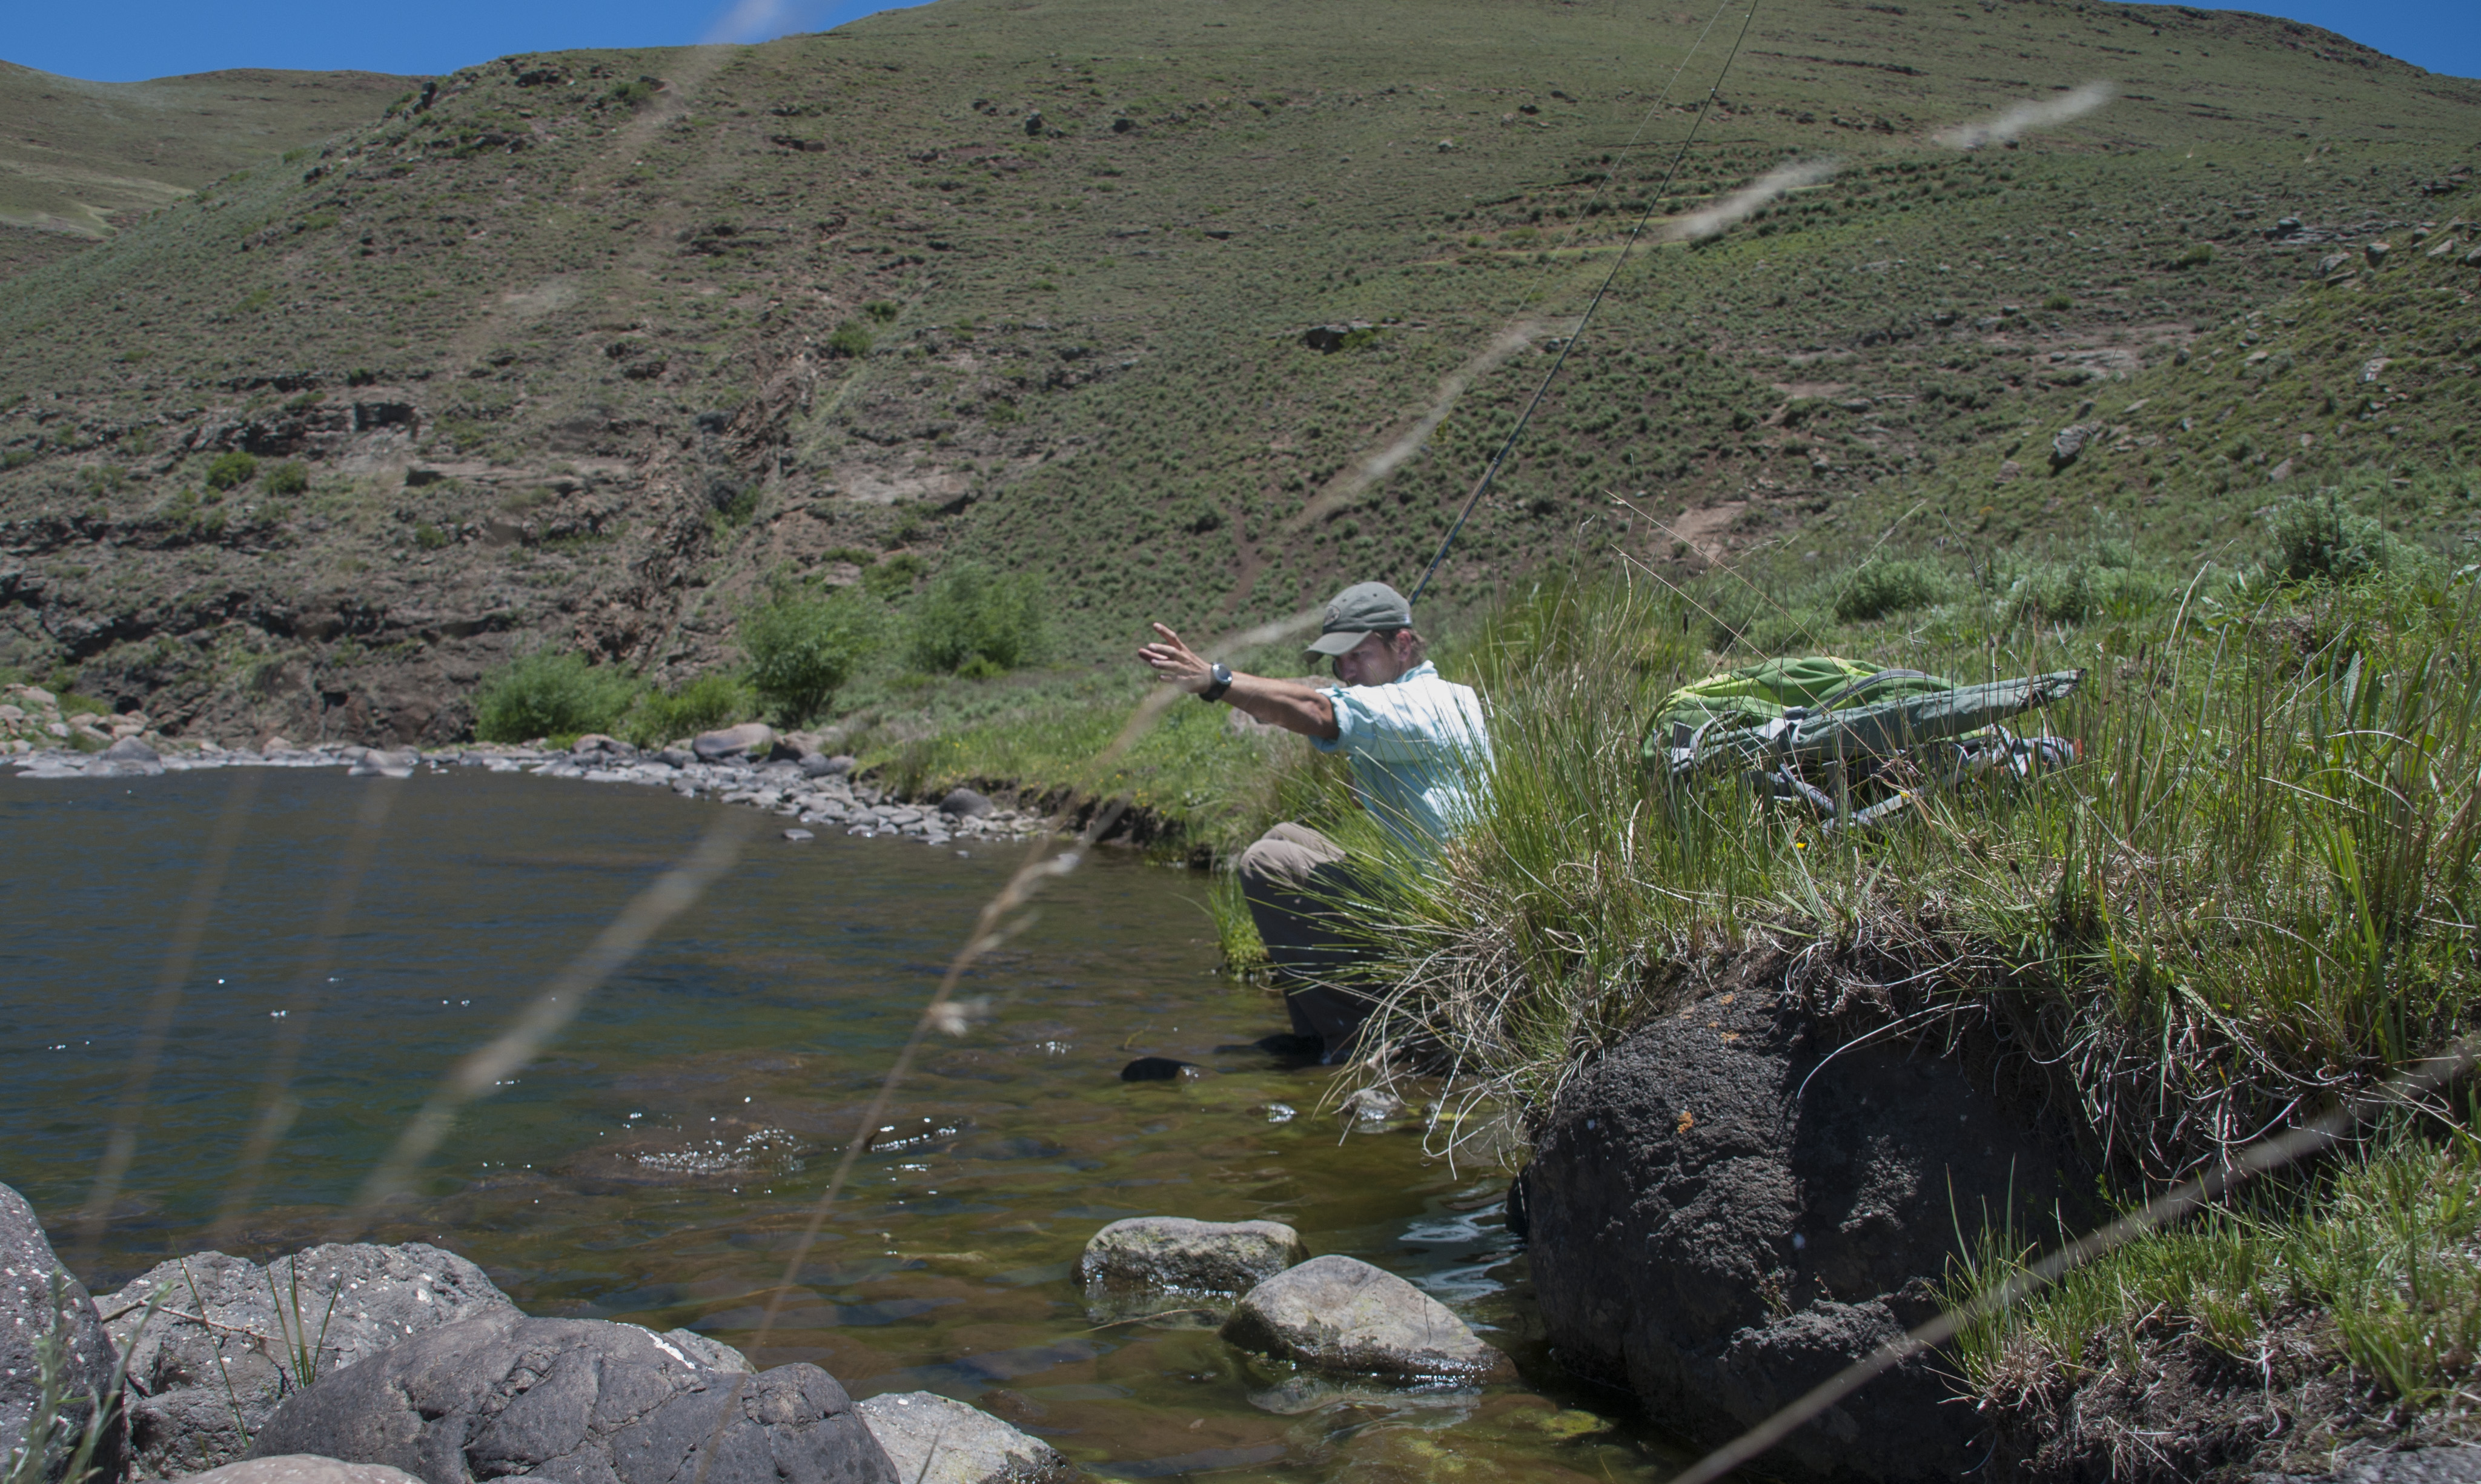 lesotho_fly_fishing_adventure - 020